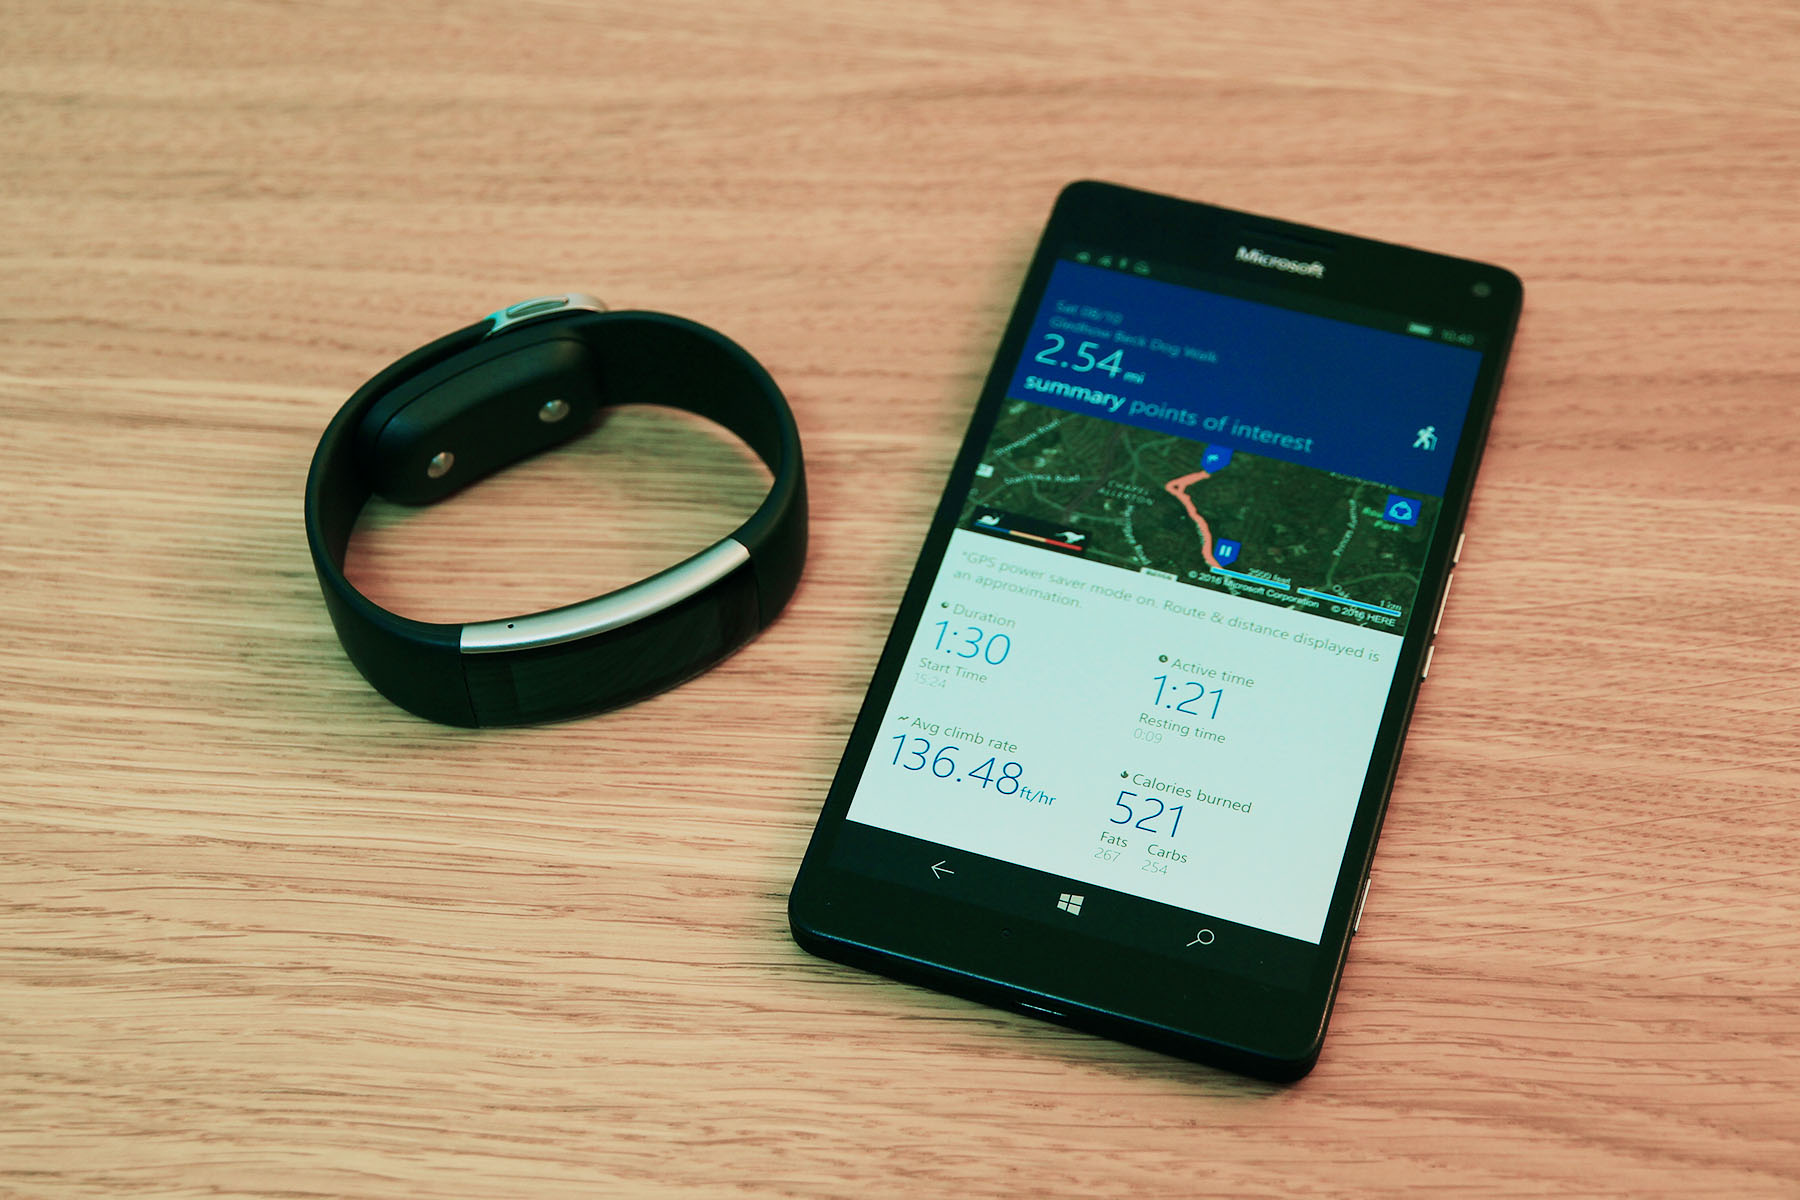 Band and Lumia